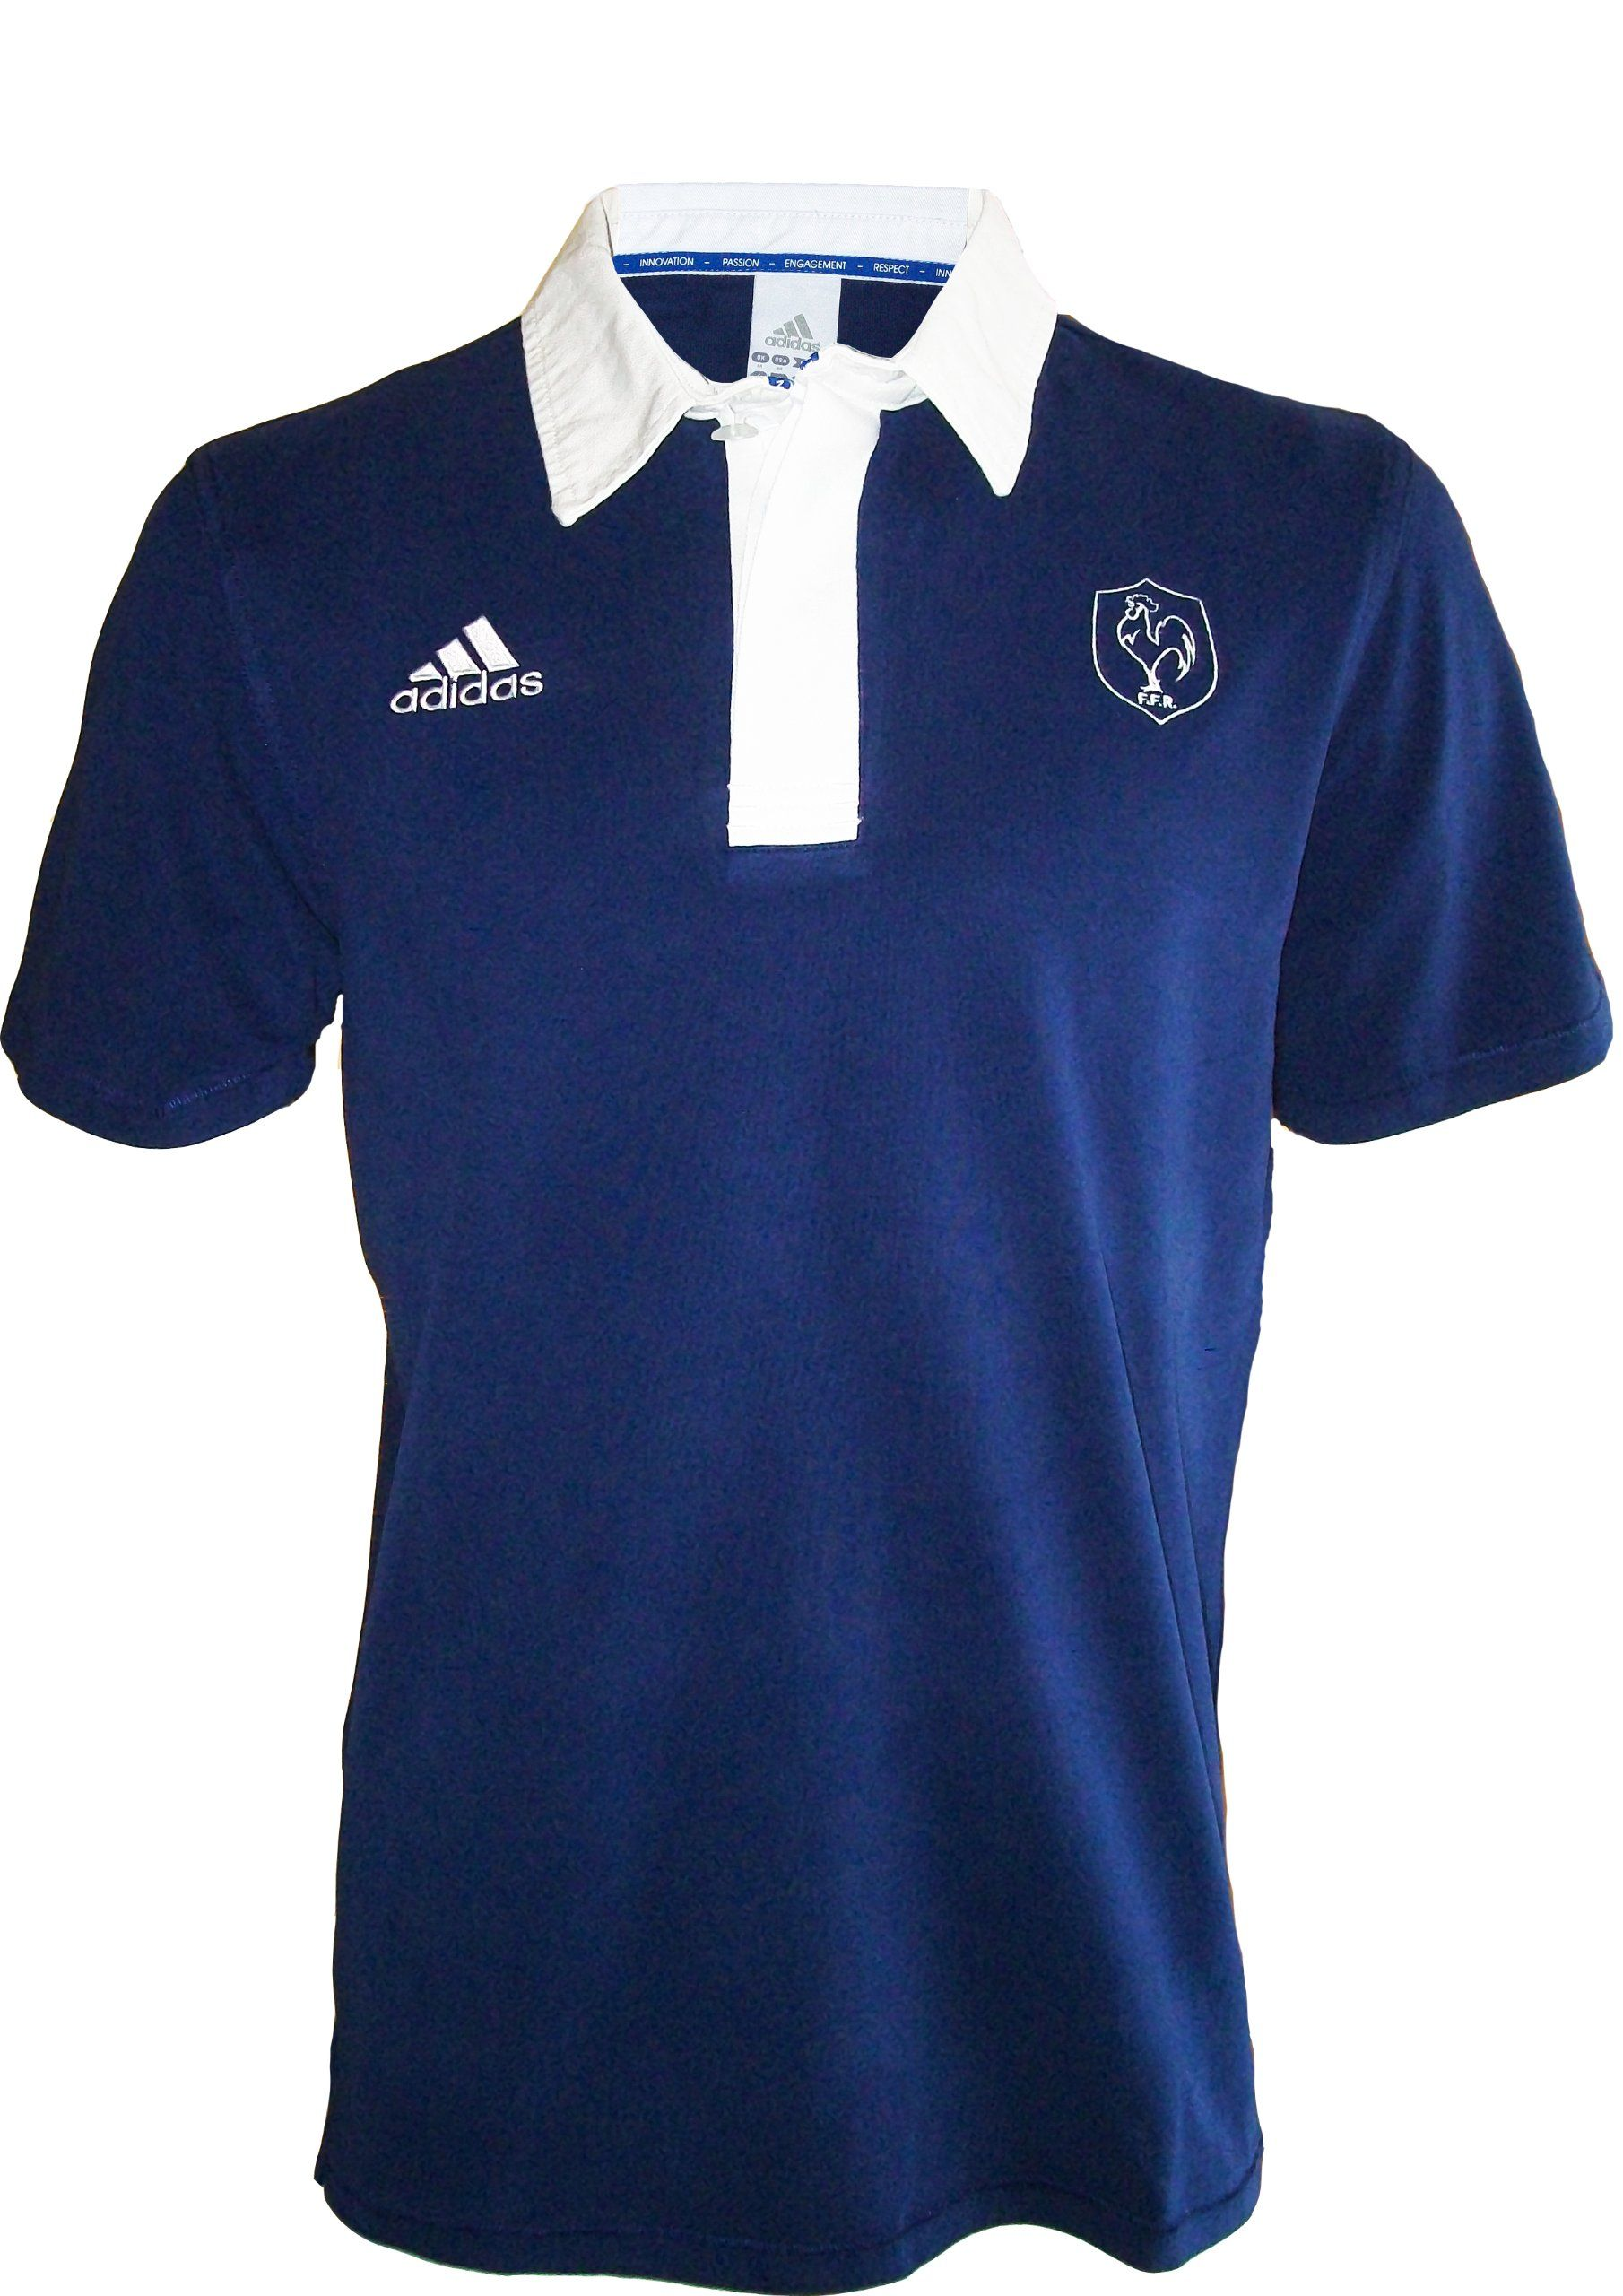 Collection Officielle Polo Equipe Adidas Rugby Xv De France OPZikuX